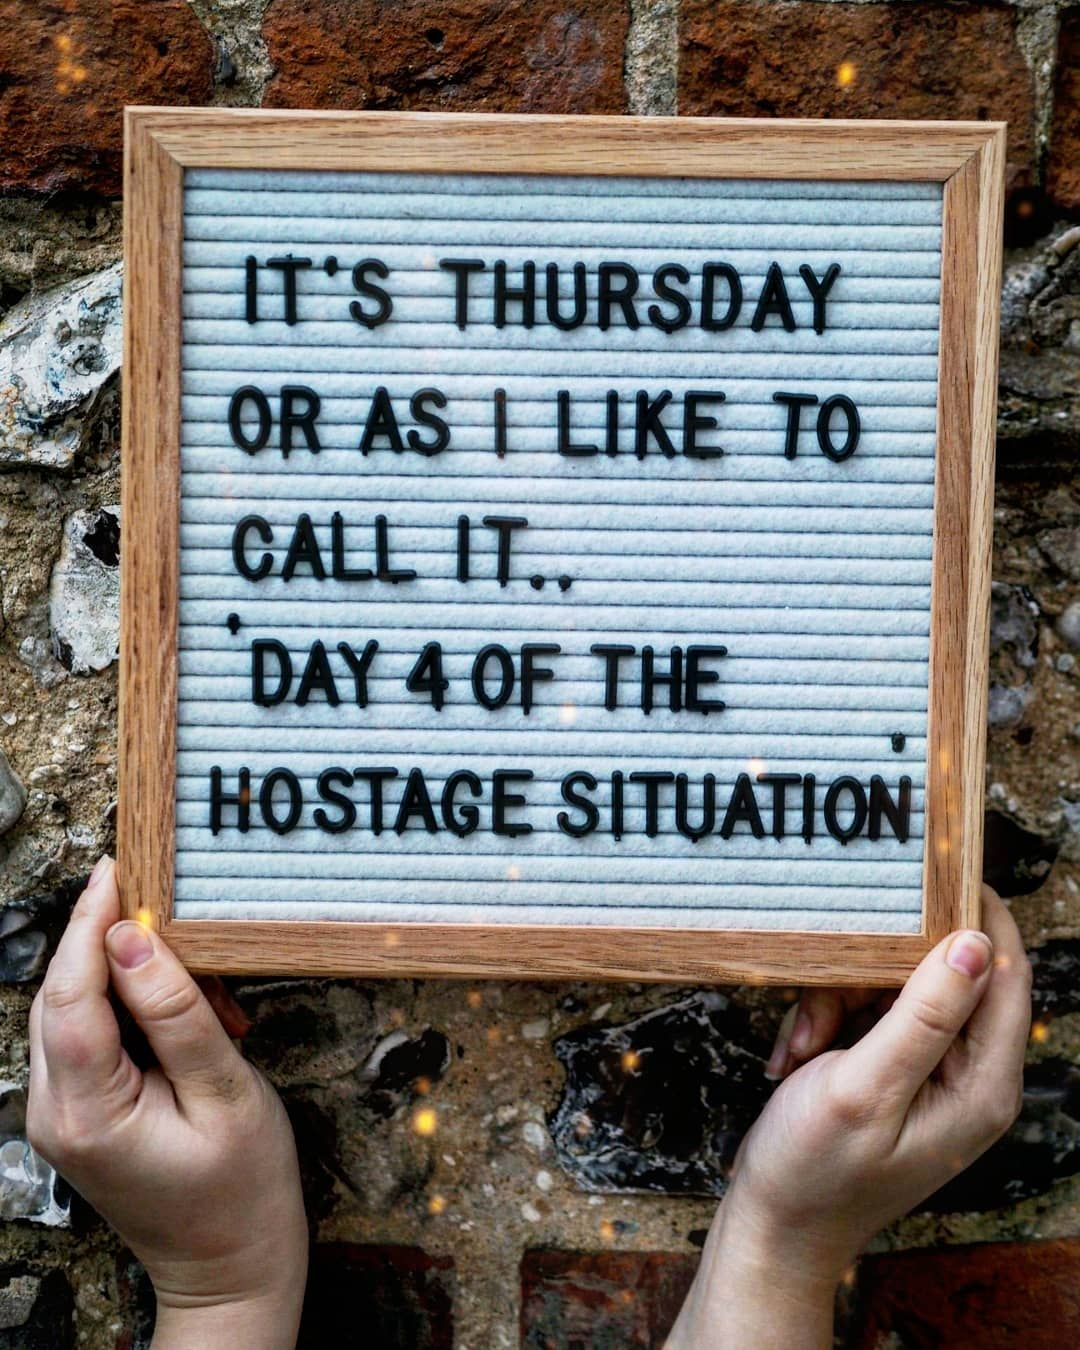 It S Thursday Or As I Like To Call It Day 4 Of The Hostage Situation Carcampingnet Funny Quotes Work Quotes Message Board Quotes